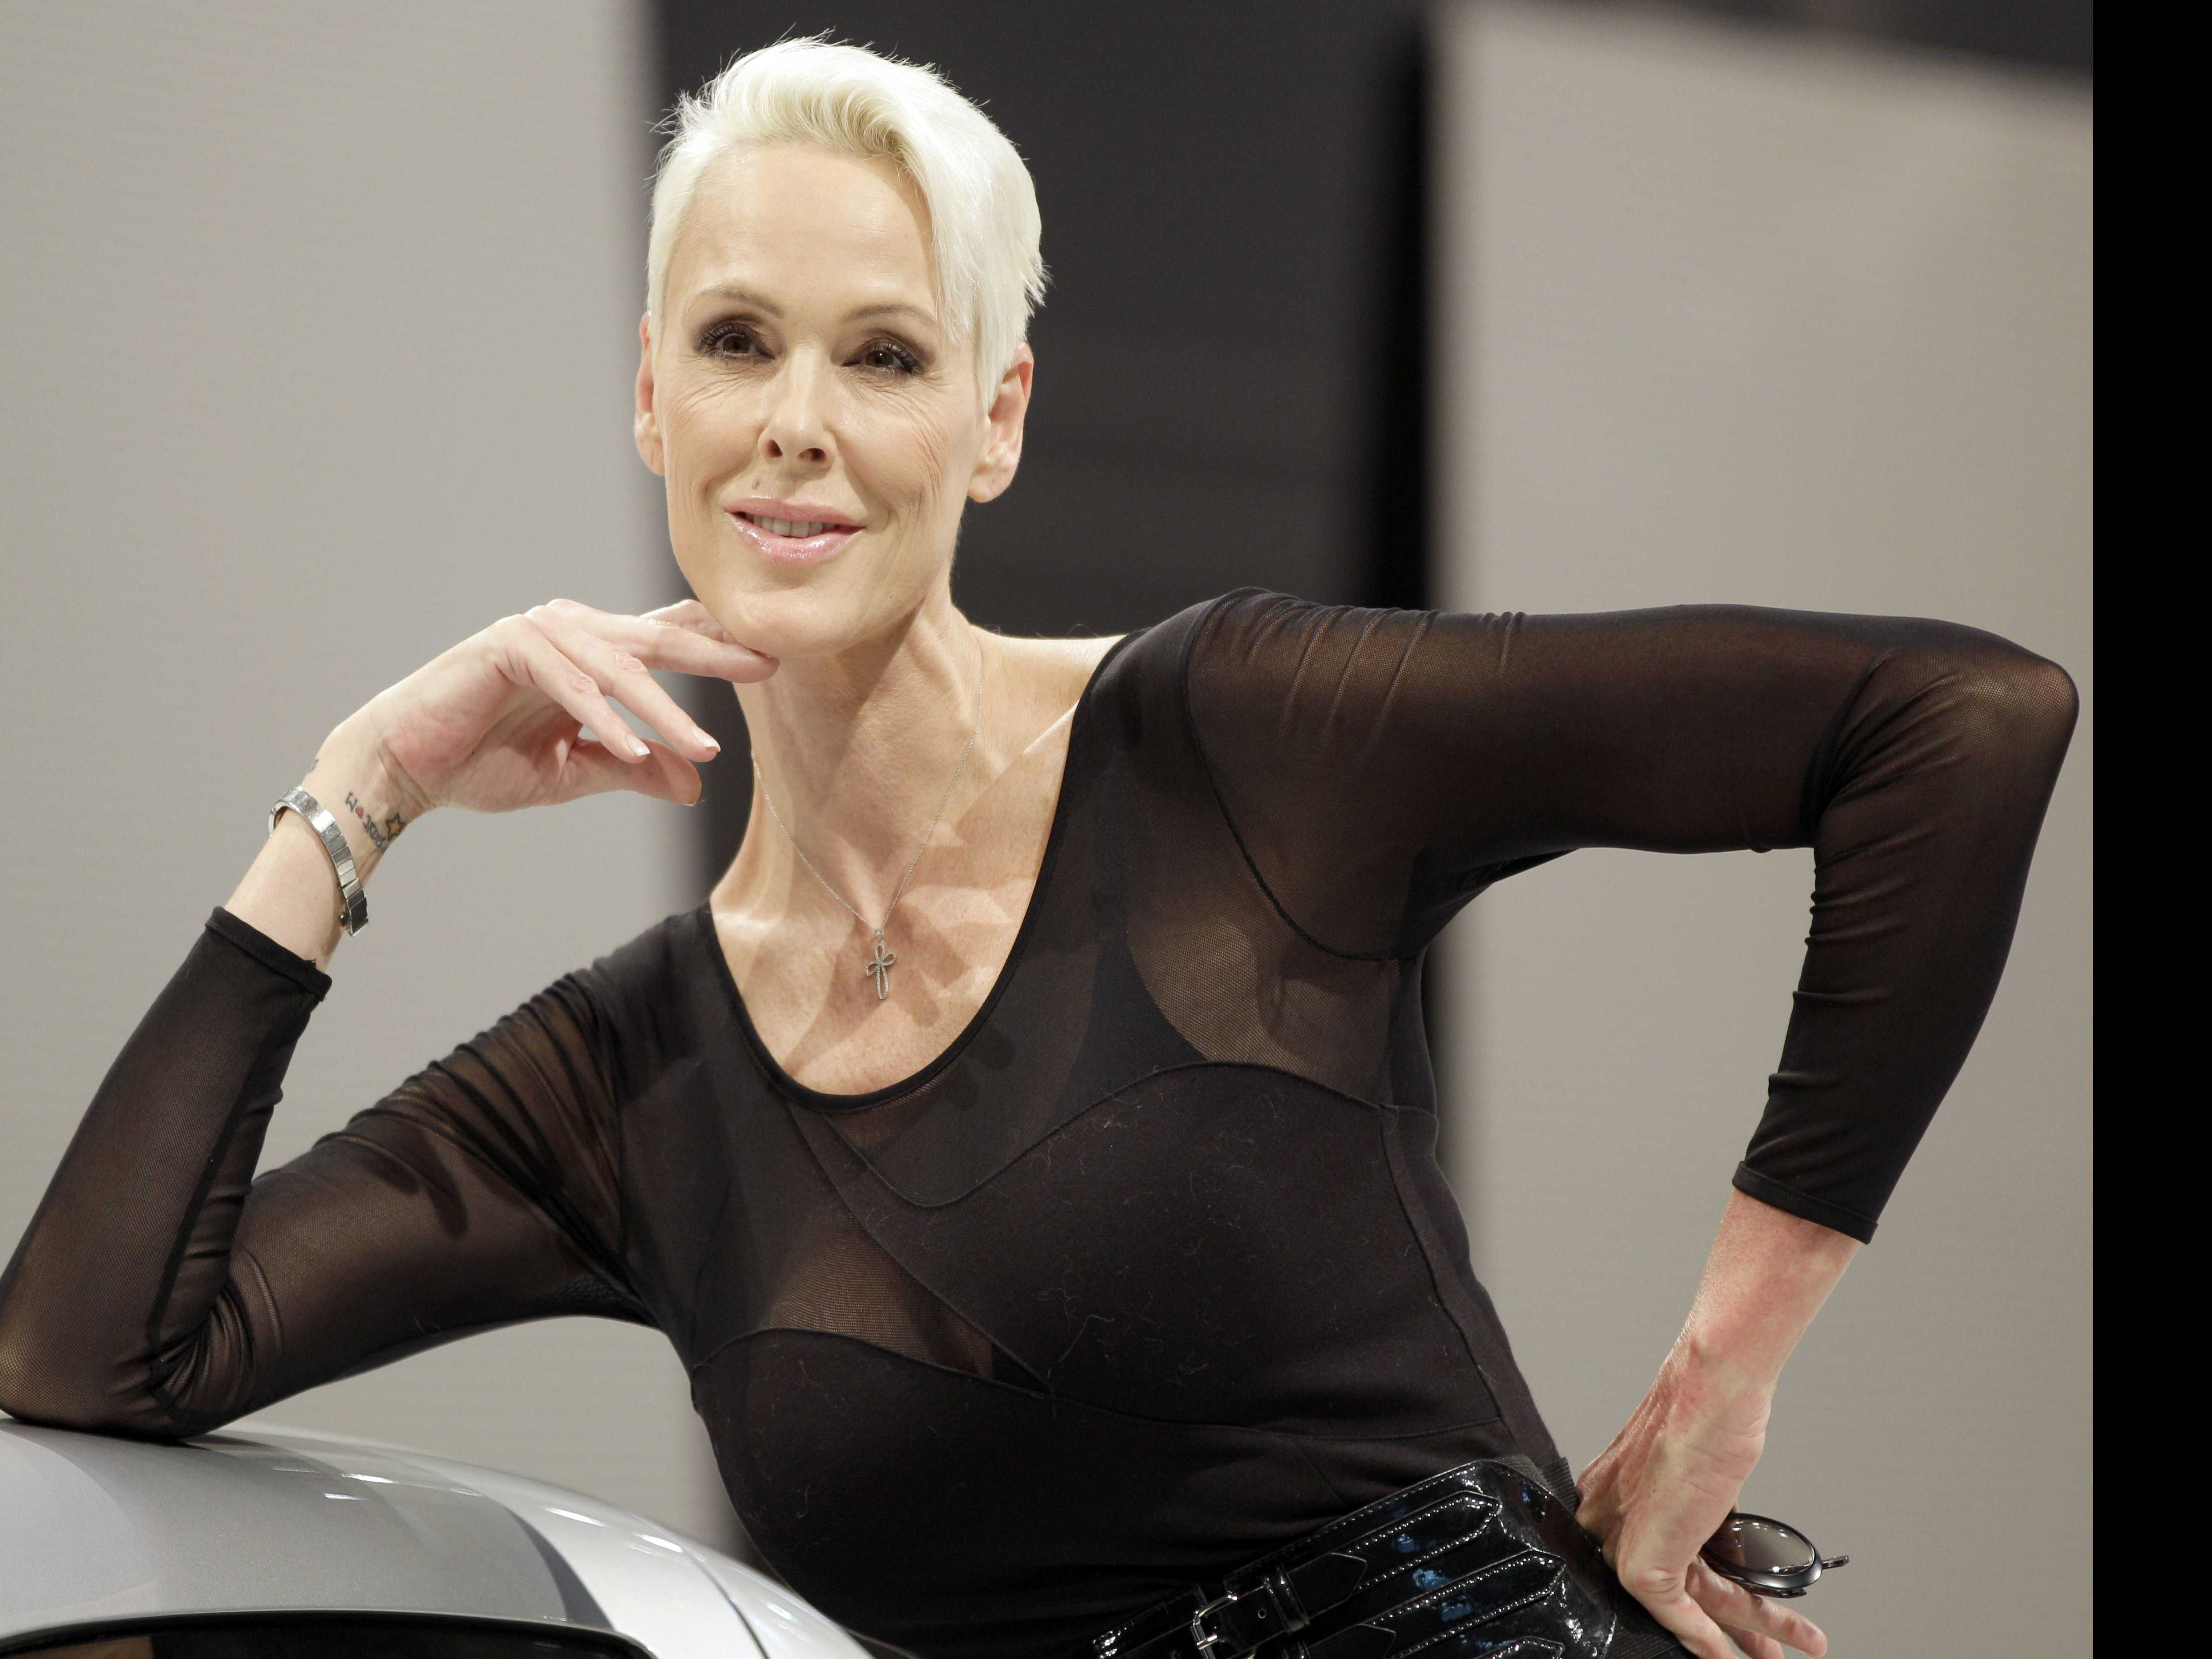 Brigitte Nielsen, 54, Has Given Birth to her Fifth Child